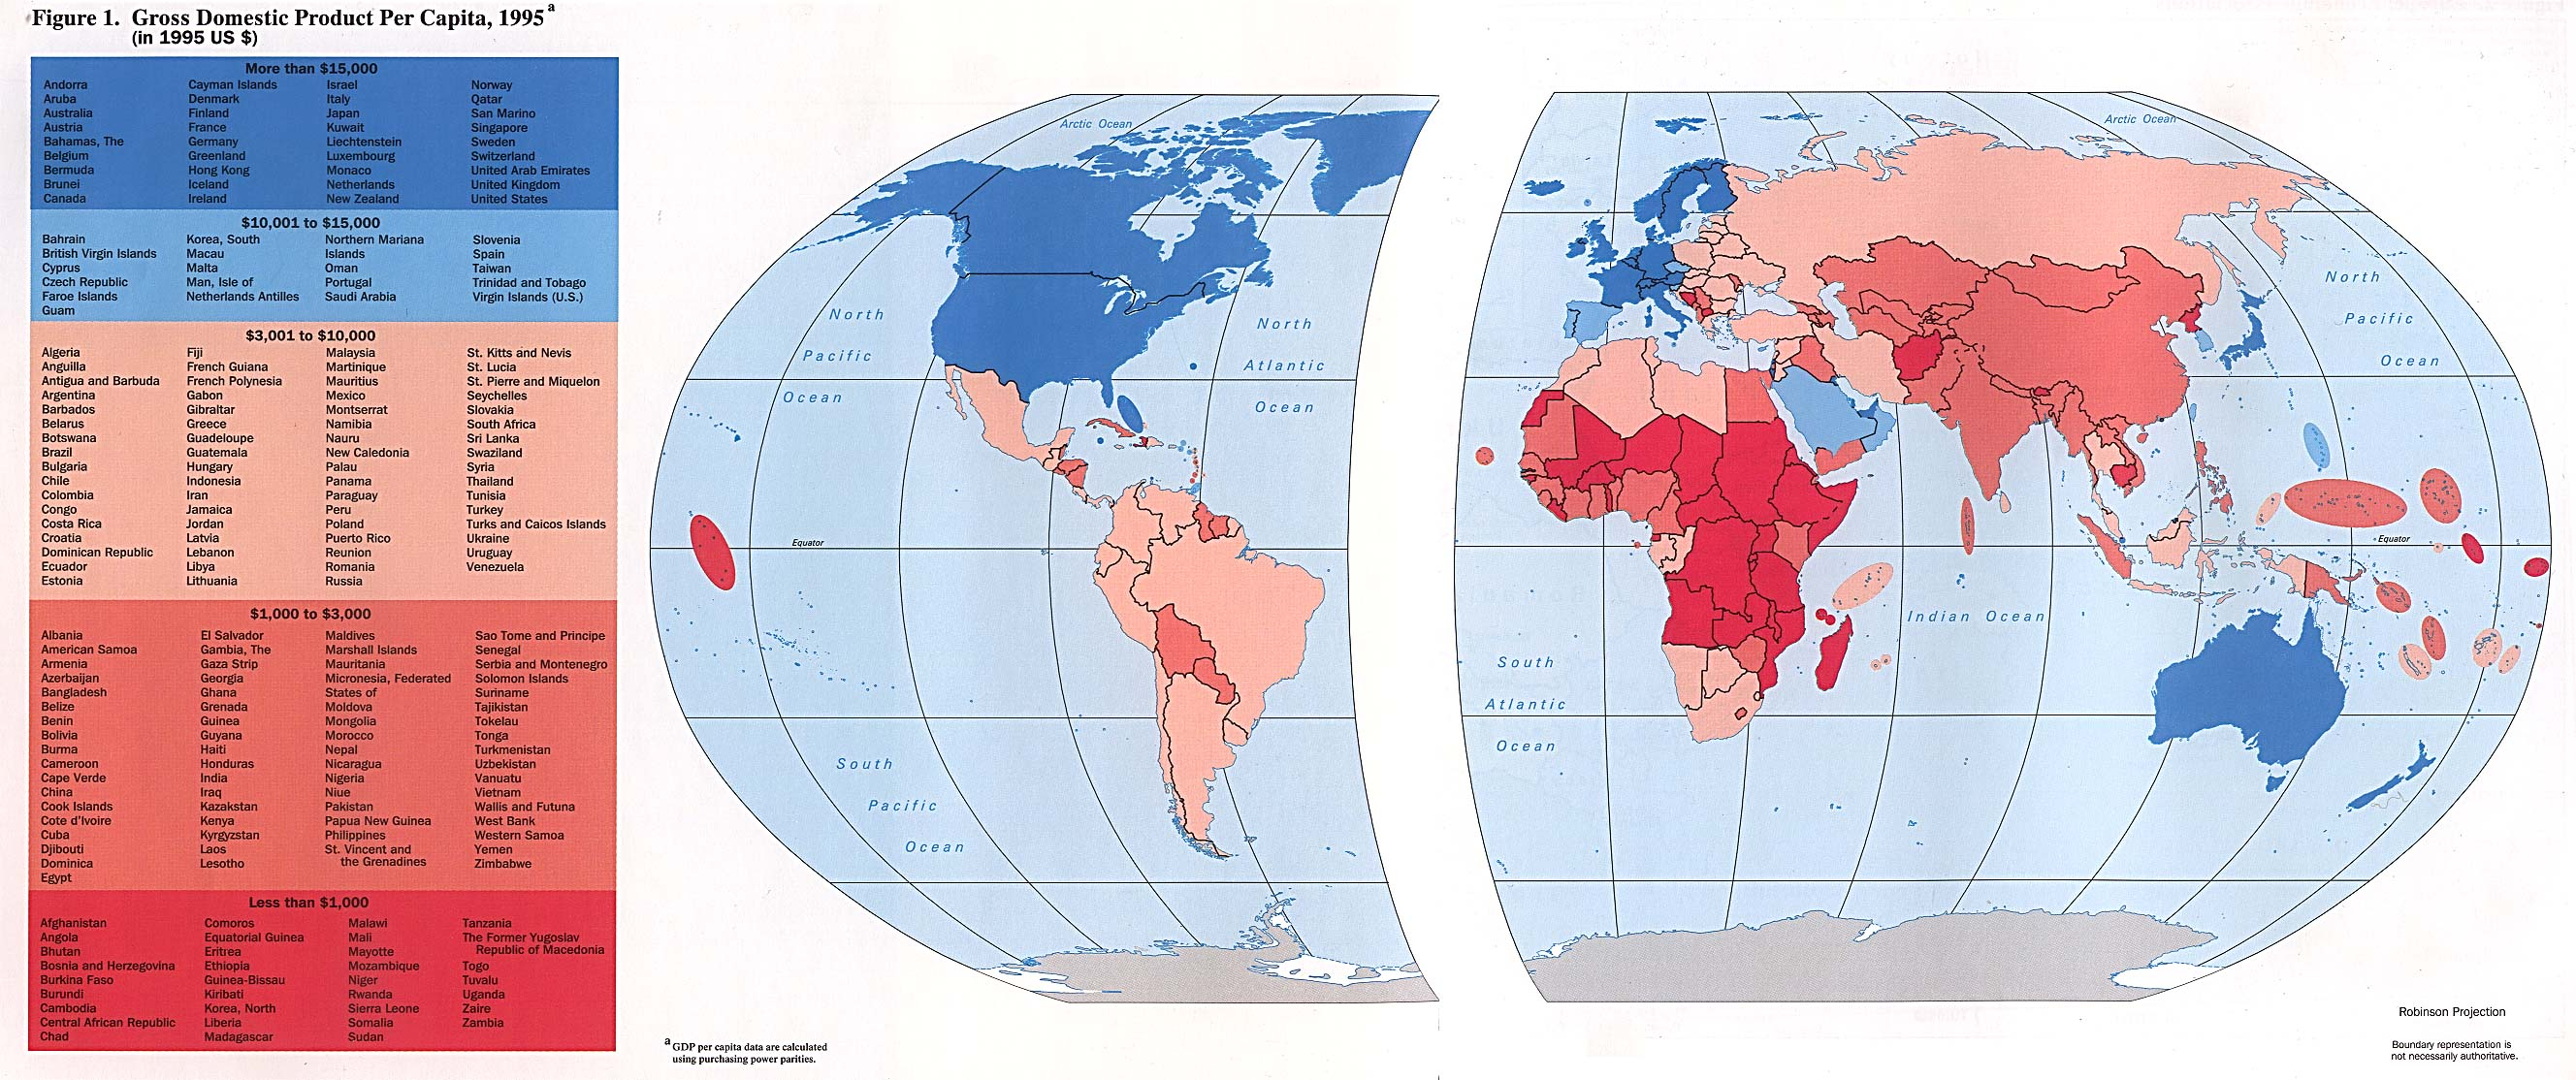 Countries by GDP per capita 1996